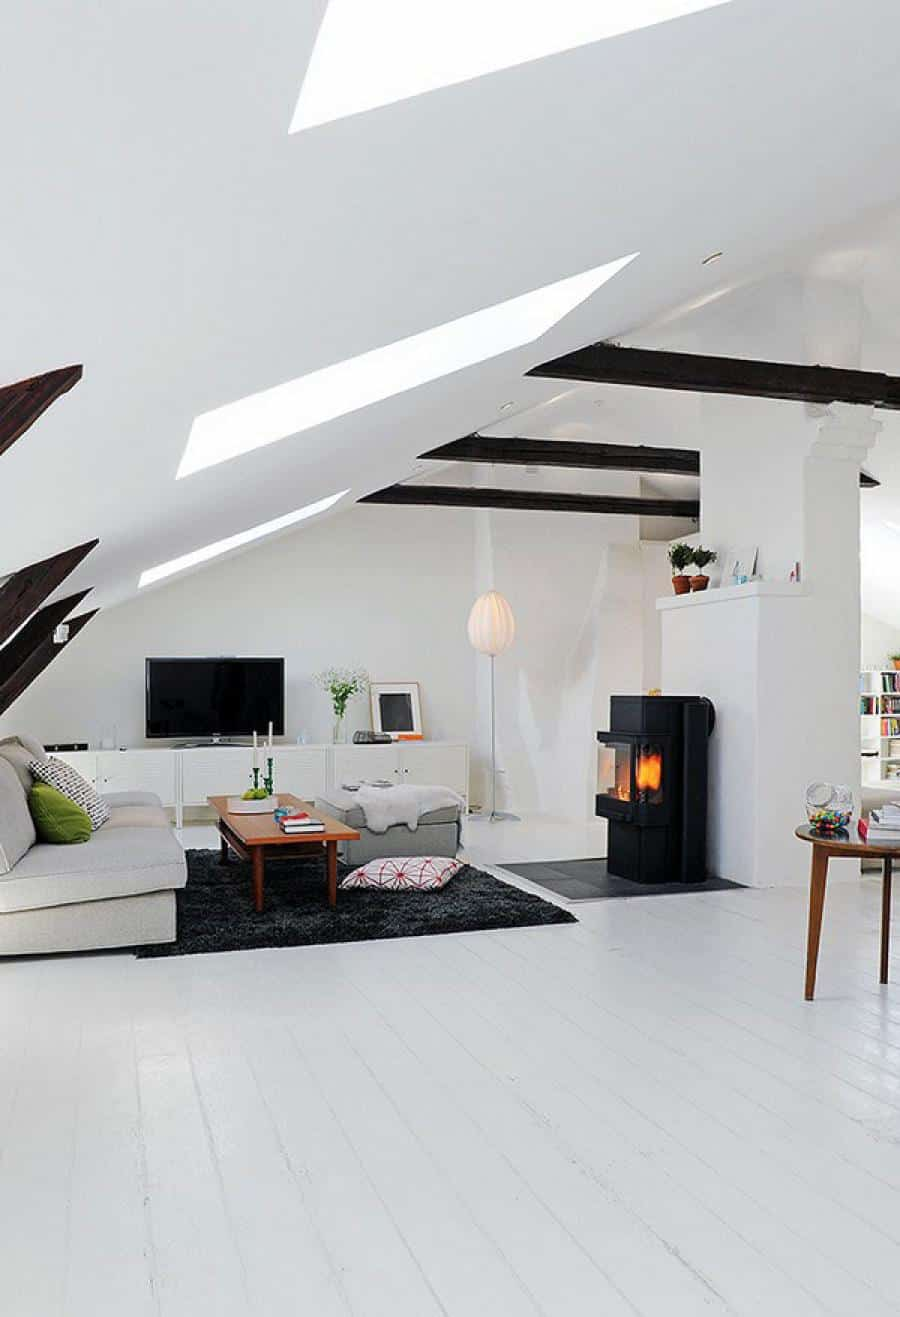 interior large attic bedroom ideas white interior with living room and simple sloping also black white furniture interior design stunning sloping wood roof attic bedroom design